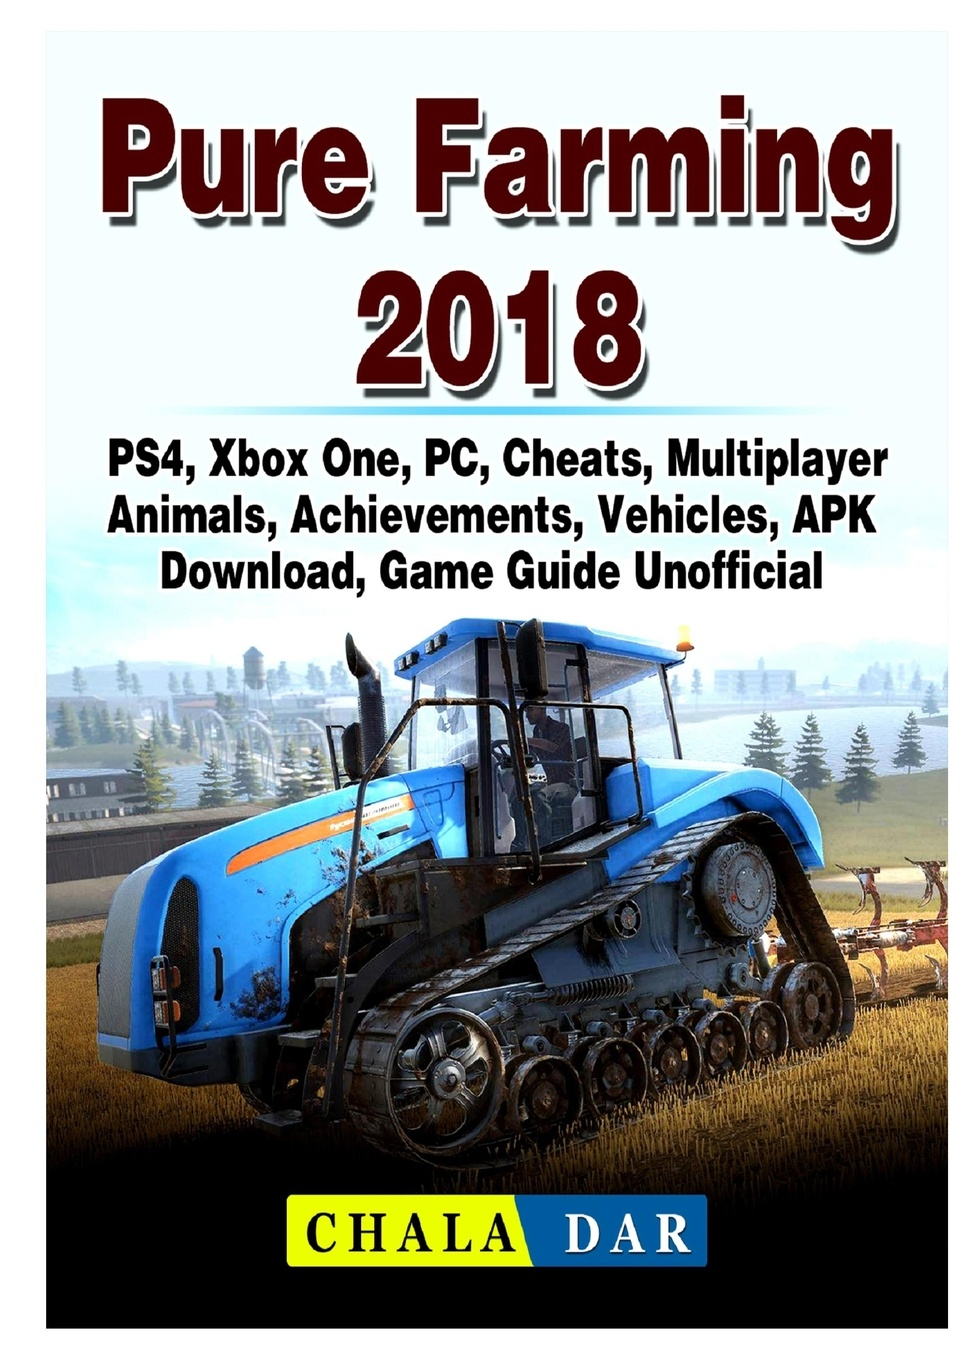 где купить Chala Dar Pure Farming 2018, PS4, Xbox One, PC, Cheats, Multiplayer, Animals, Achievements, Vehicles, APK, Download, Game Guide Unofficial по лучшей цене